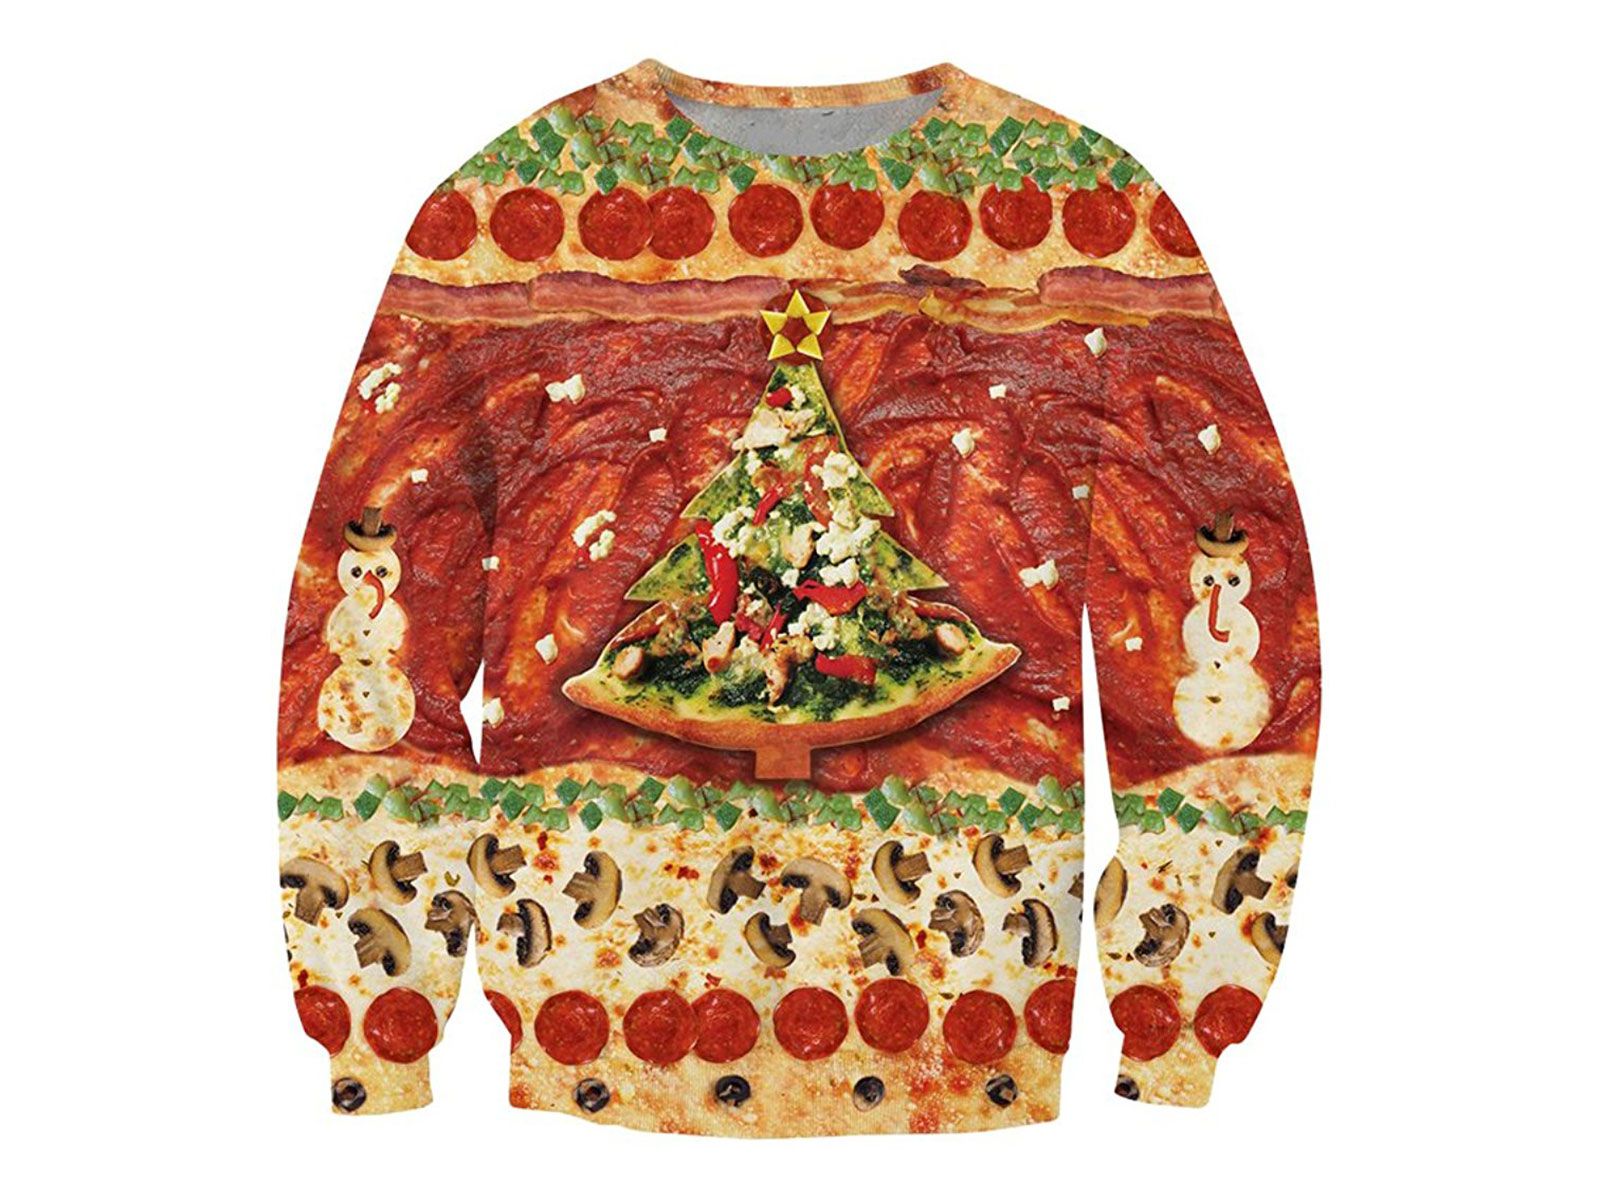 11 Food Themed Ugly Christmas Sweaters Serving Up Holiday Cheer